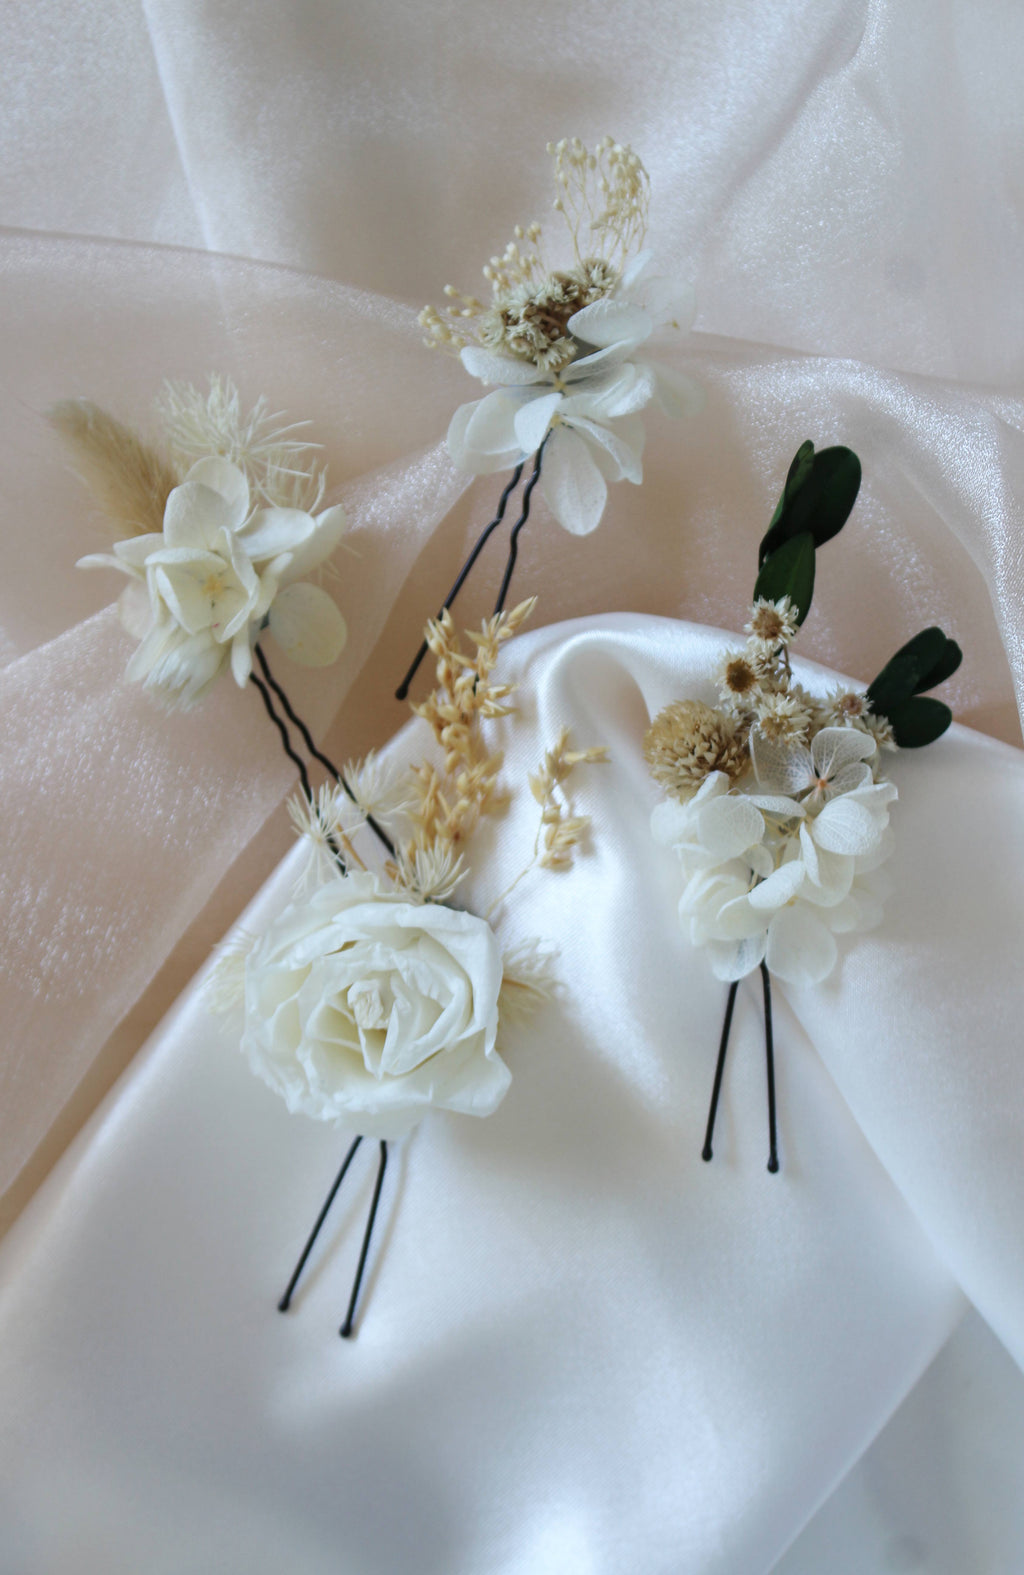 Shining brightly Hairpin Set - Herhair Accessories